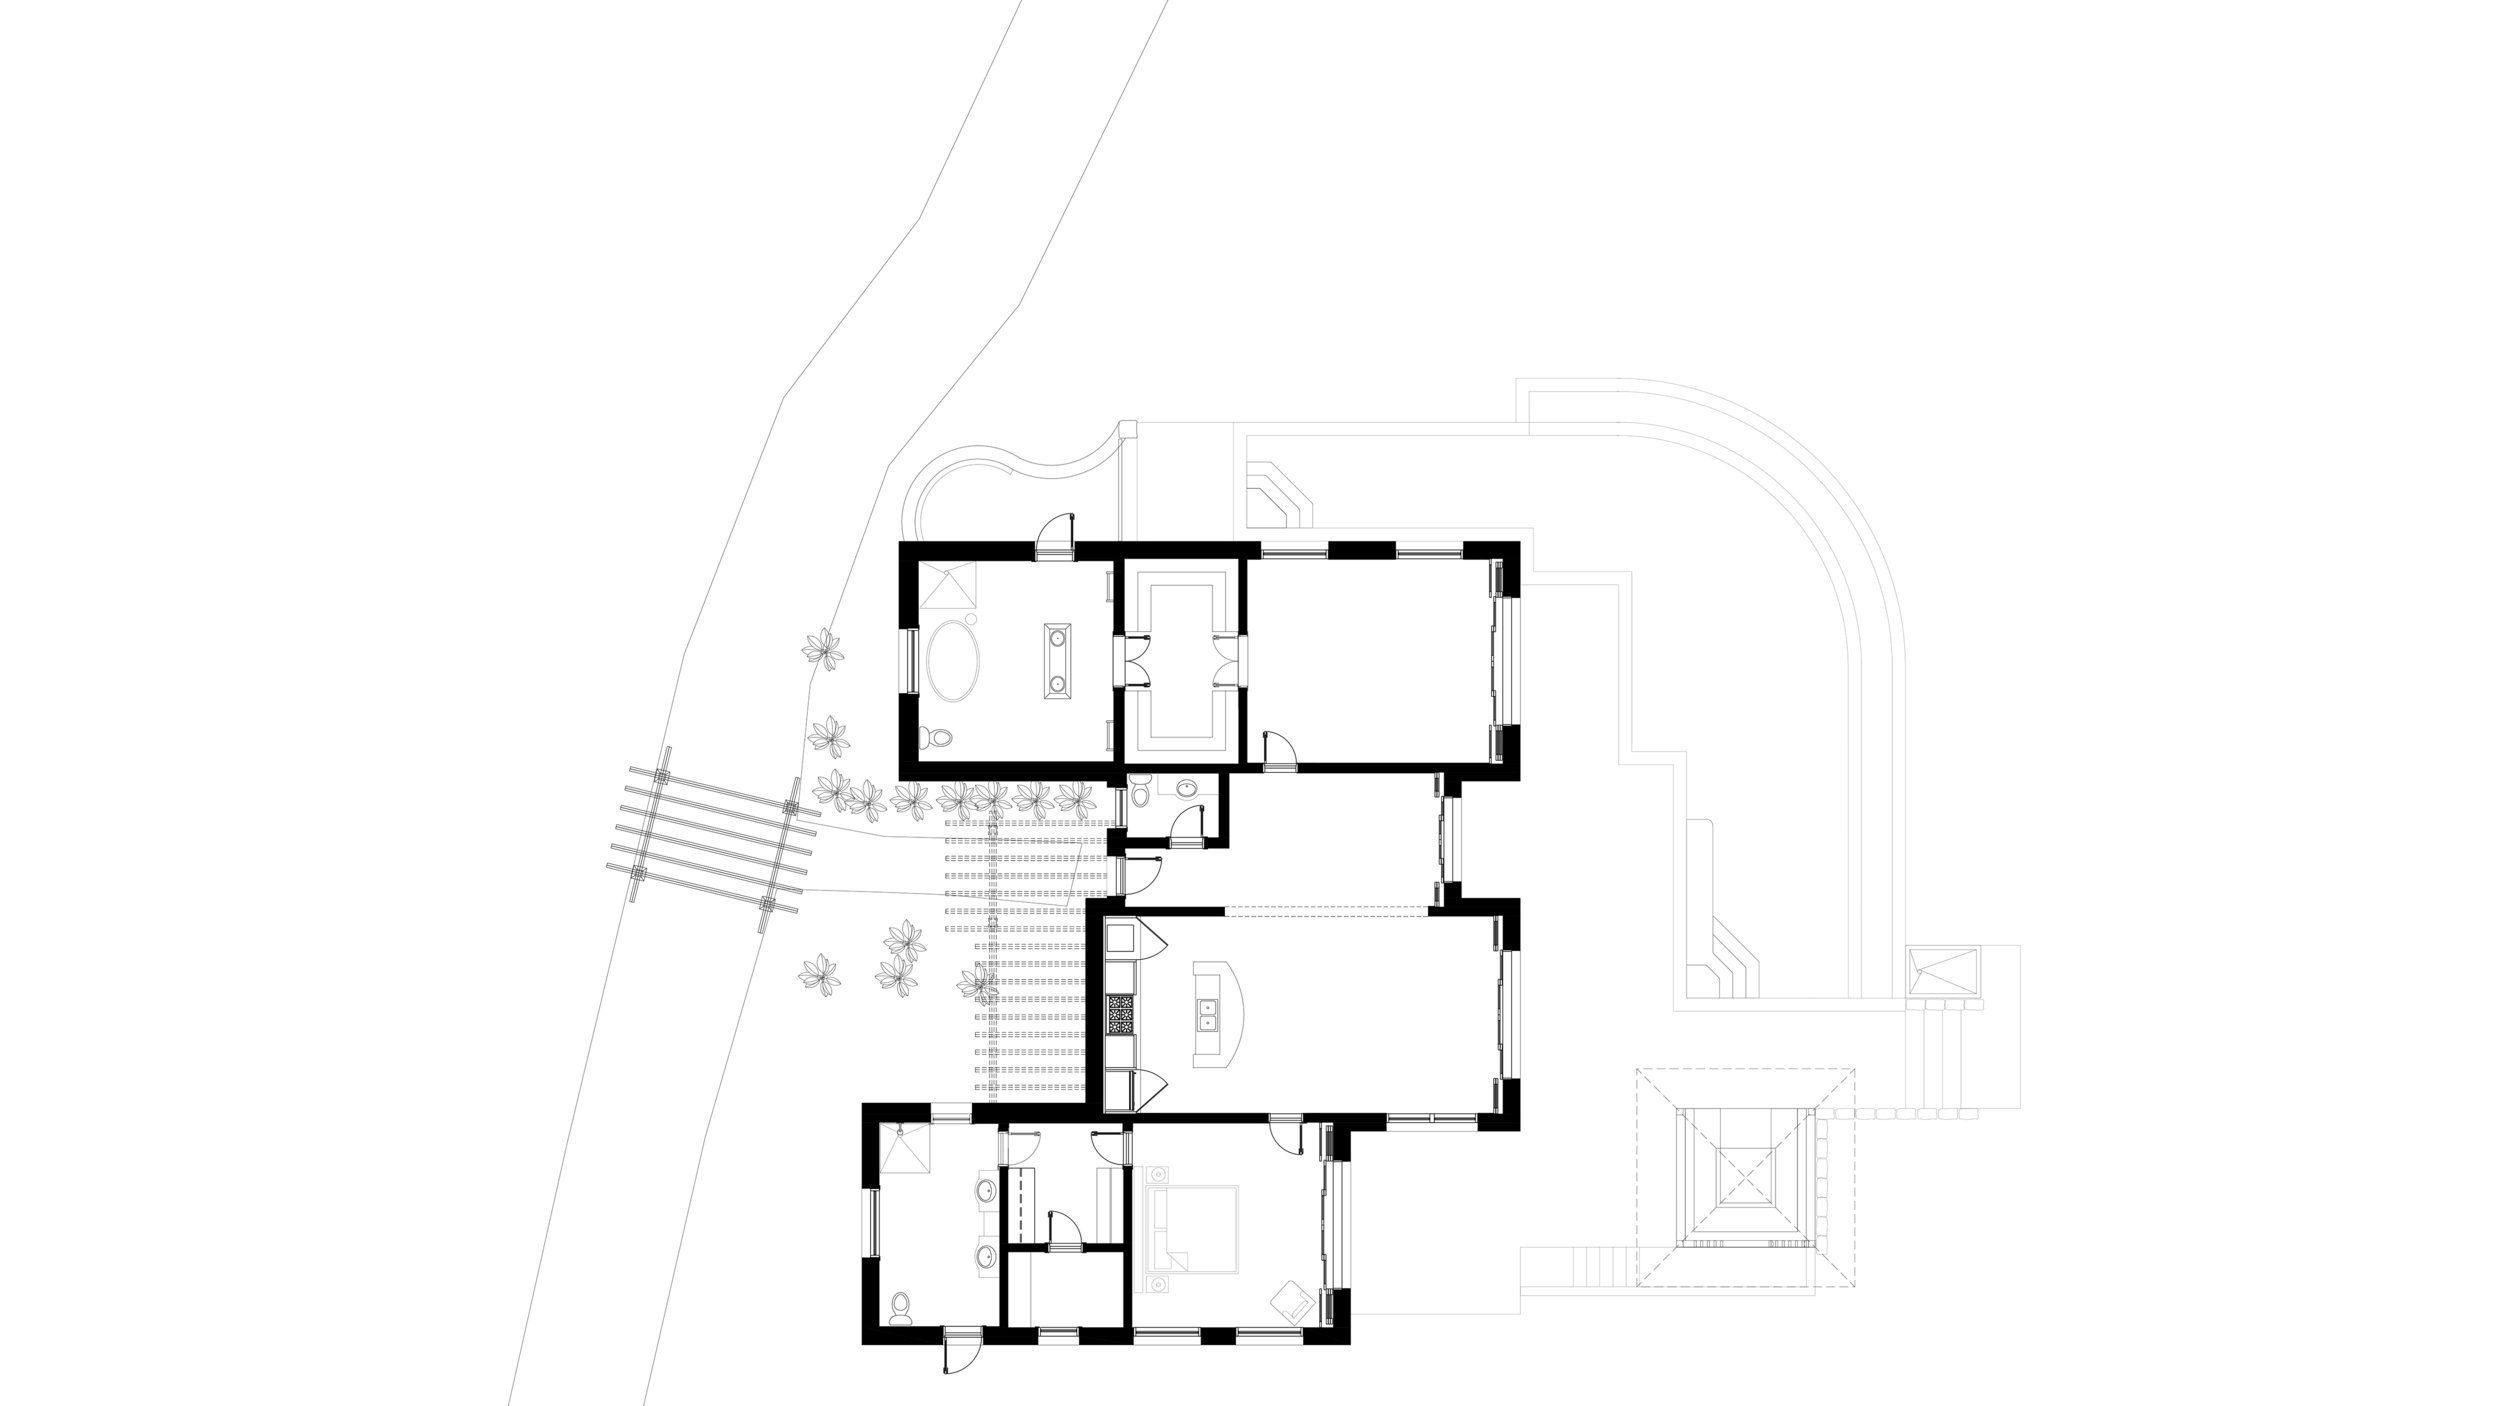 MTAD_JEWEL BOX PLAN 01 EXISTING.jpg